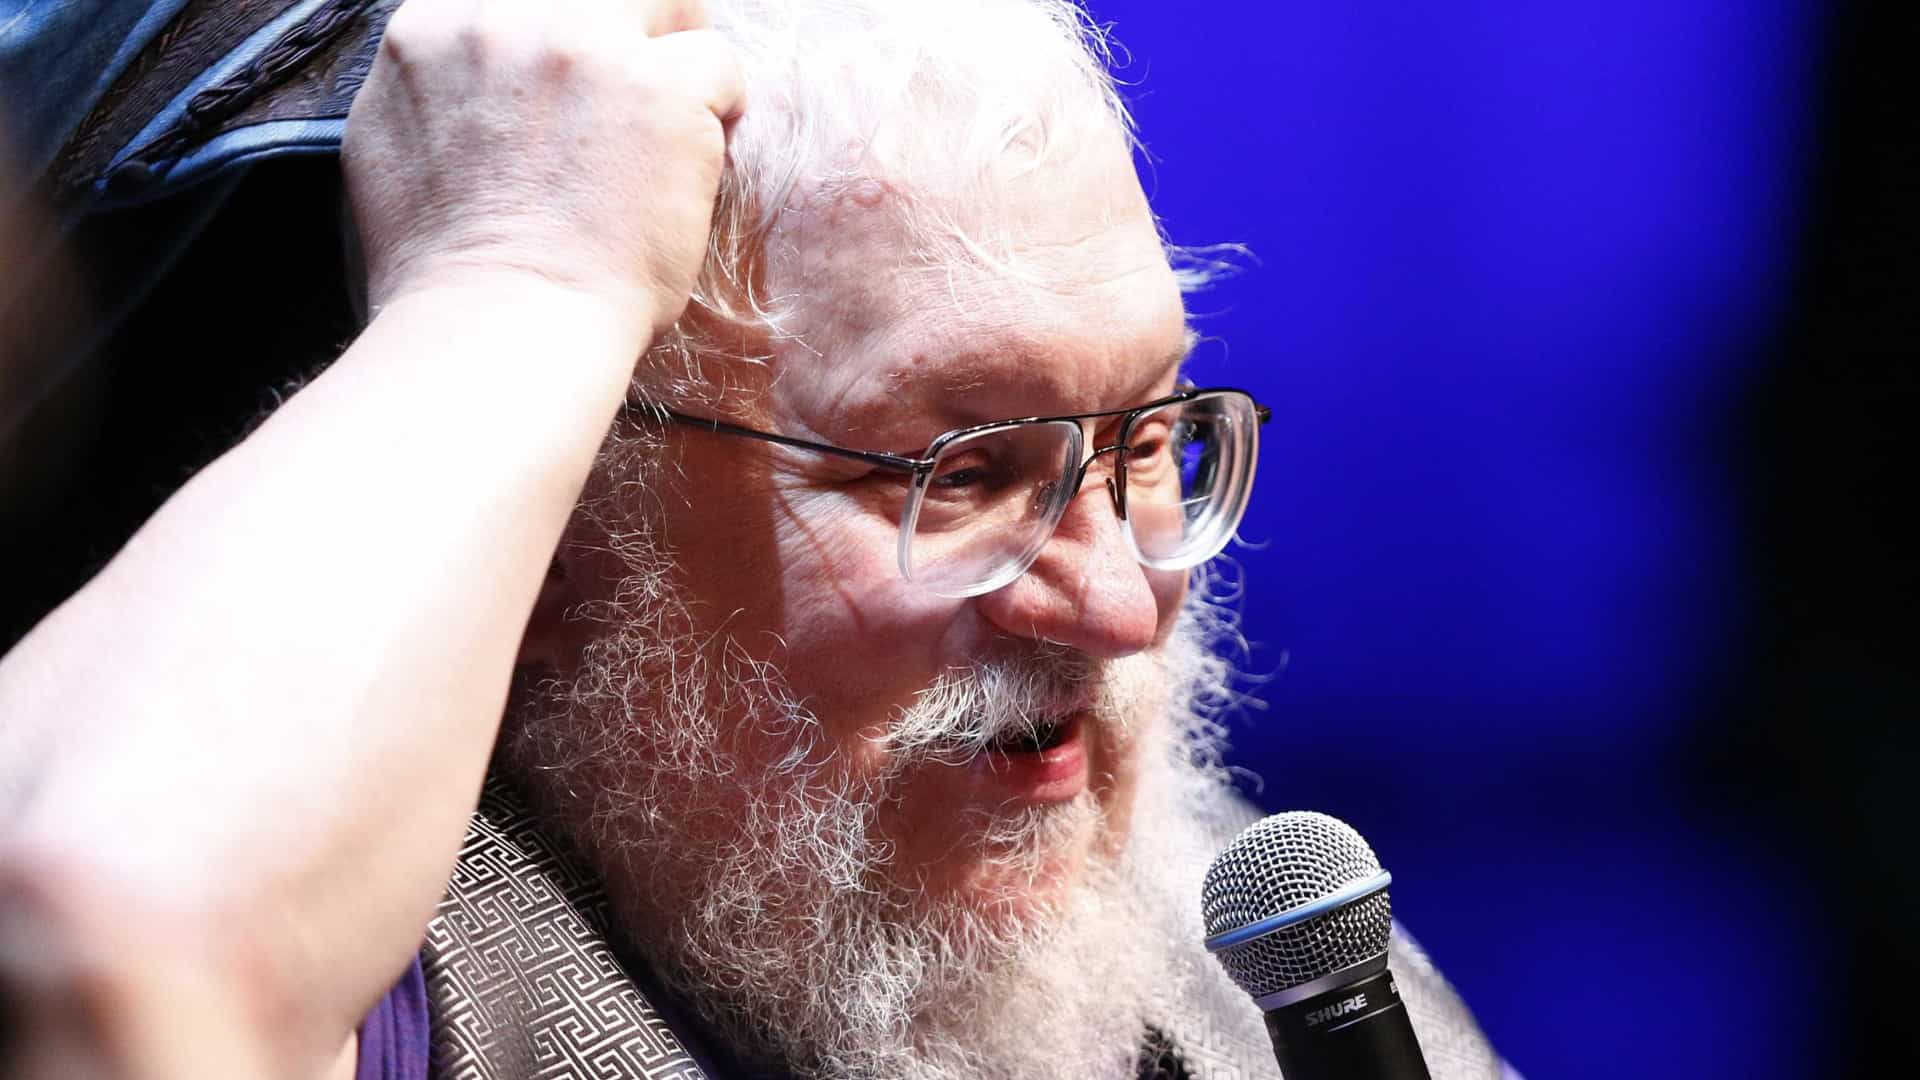 George R.R. Martin revela discordar de 